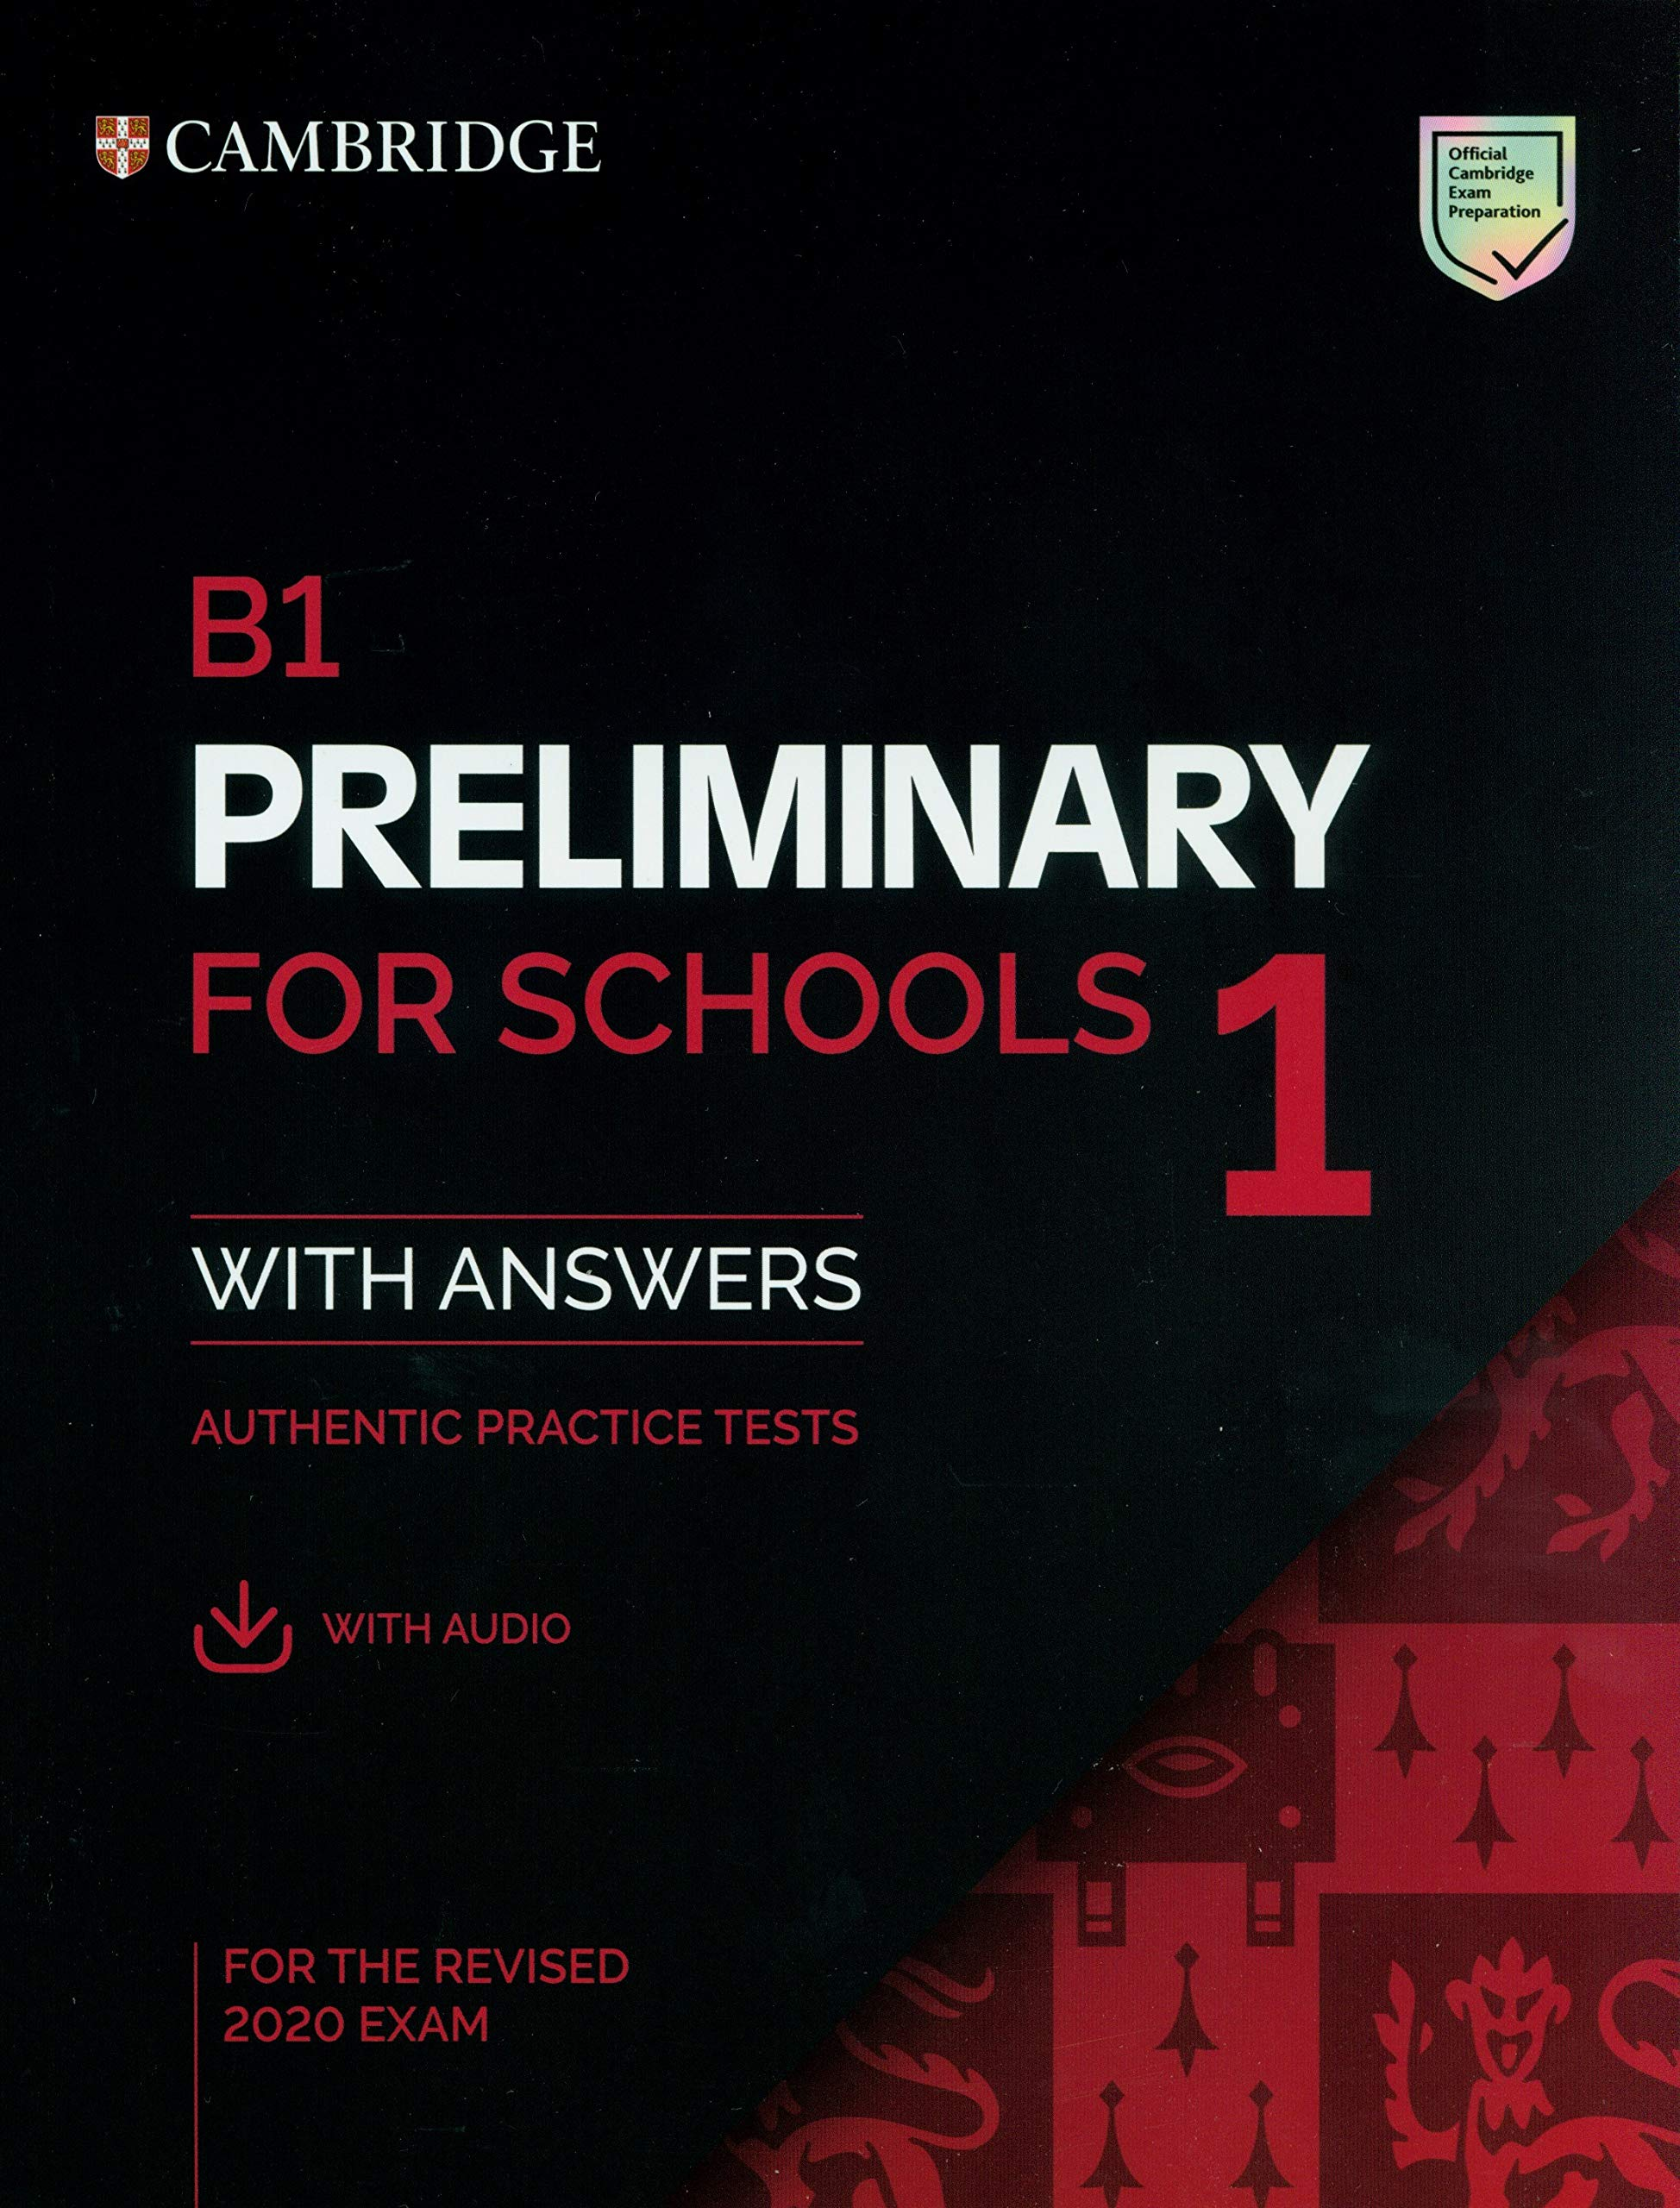 Cambridge B1 Preliminary for school 1 for the revised 2020 exam (PET for school 2020)